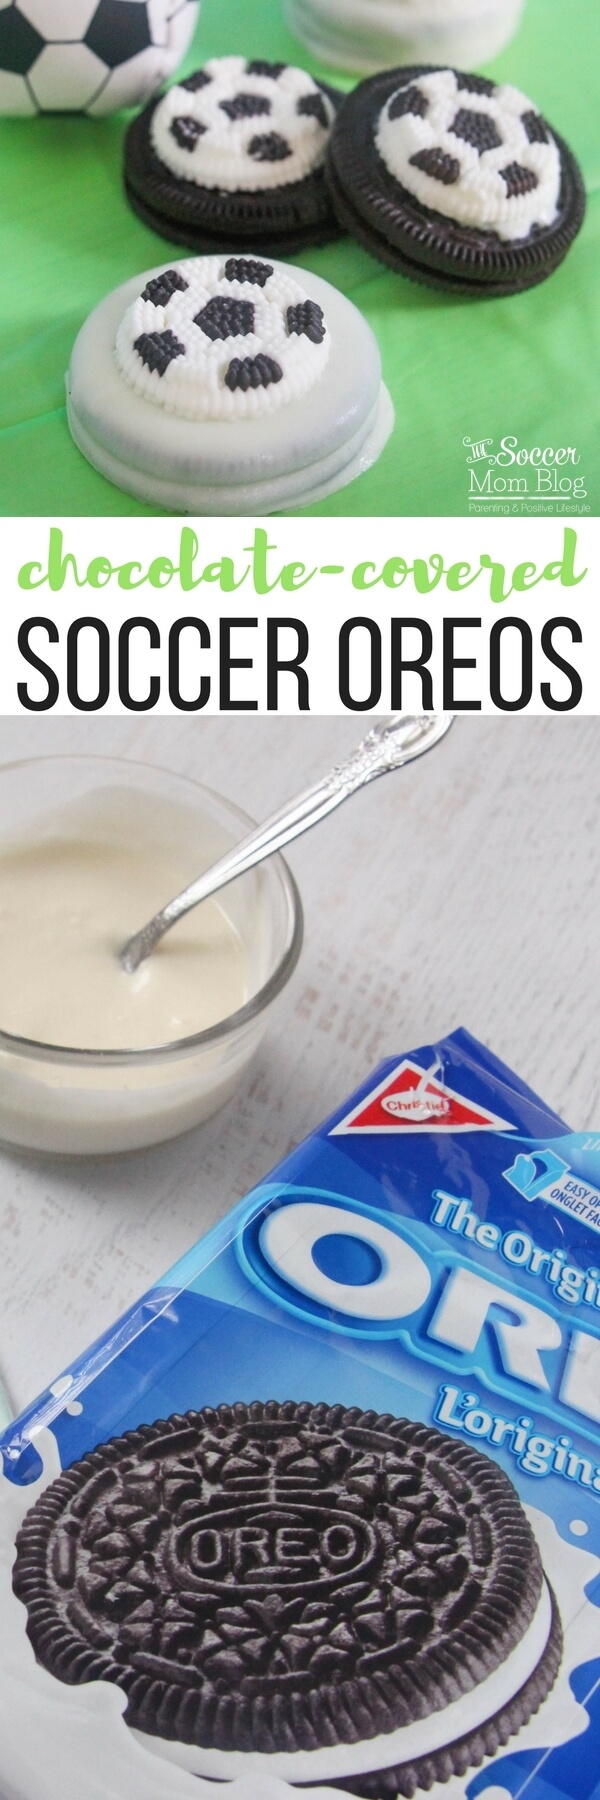 Perfect for a soccer-themed kids birthday party or post practice treat! Chocolate covered soccer Oreos are an easy dessert recipe & guaranteed crowd-pleaser!